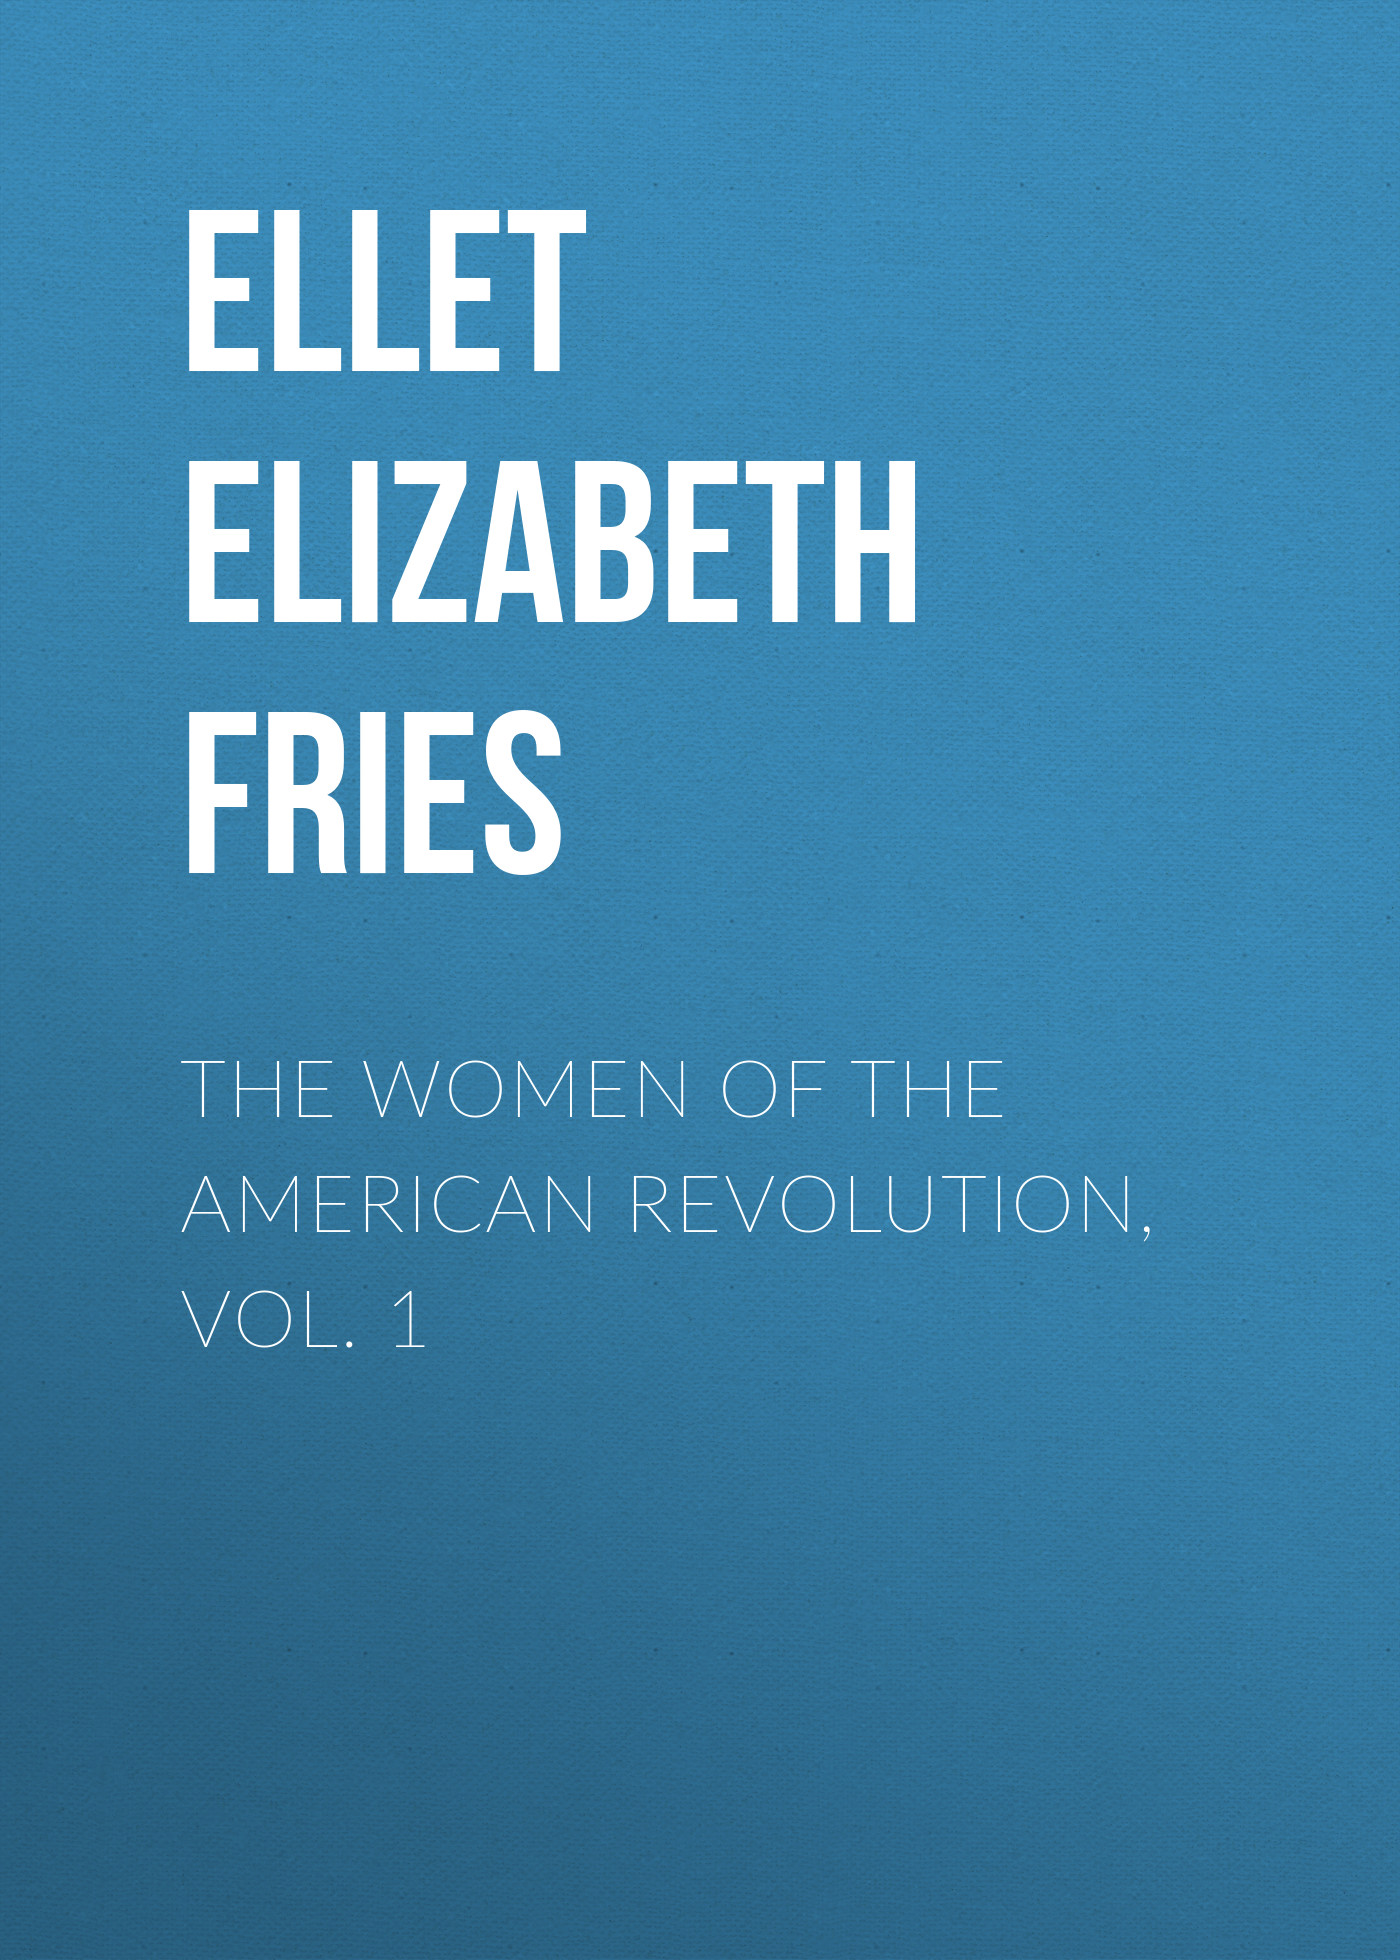 Ellet Elizabeth Fries The Women of The American Revolution, Vol. 1